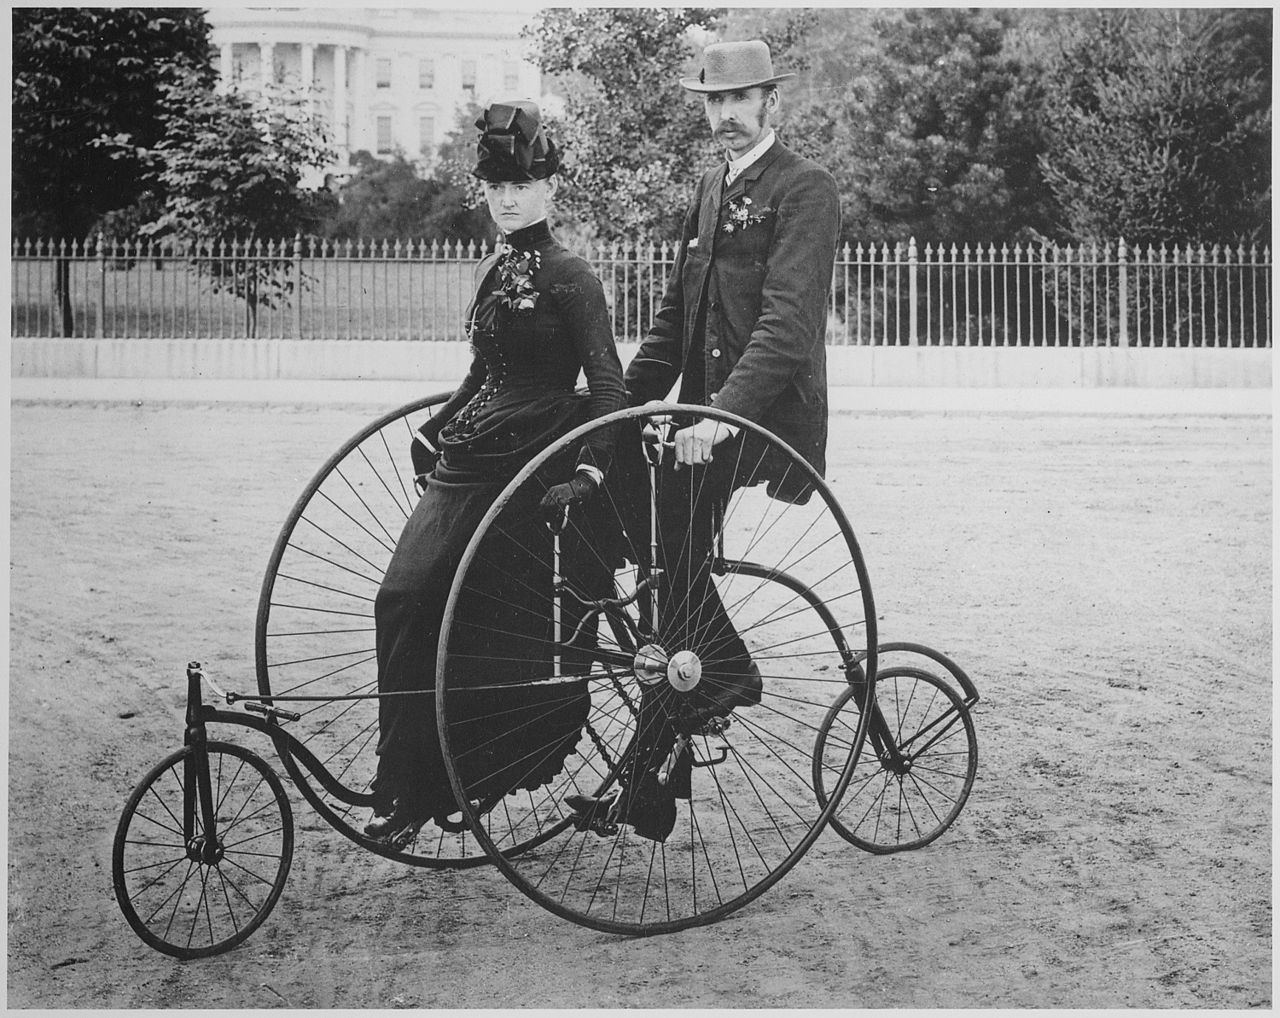 Image: A HUGE wheeled bicycle fro 1886 with smartly dressed people riding it together.